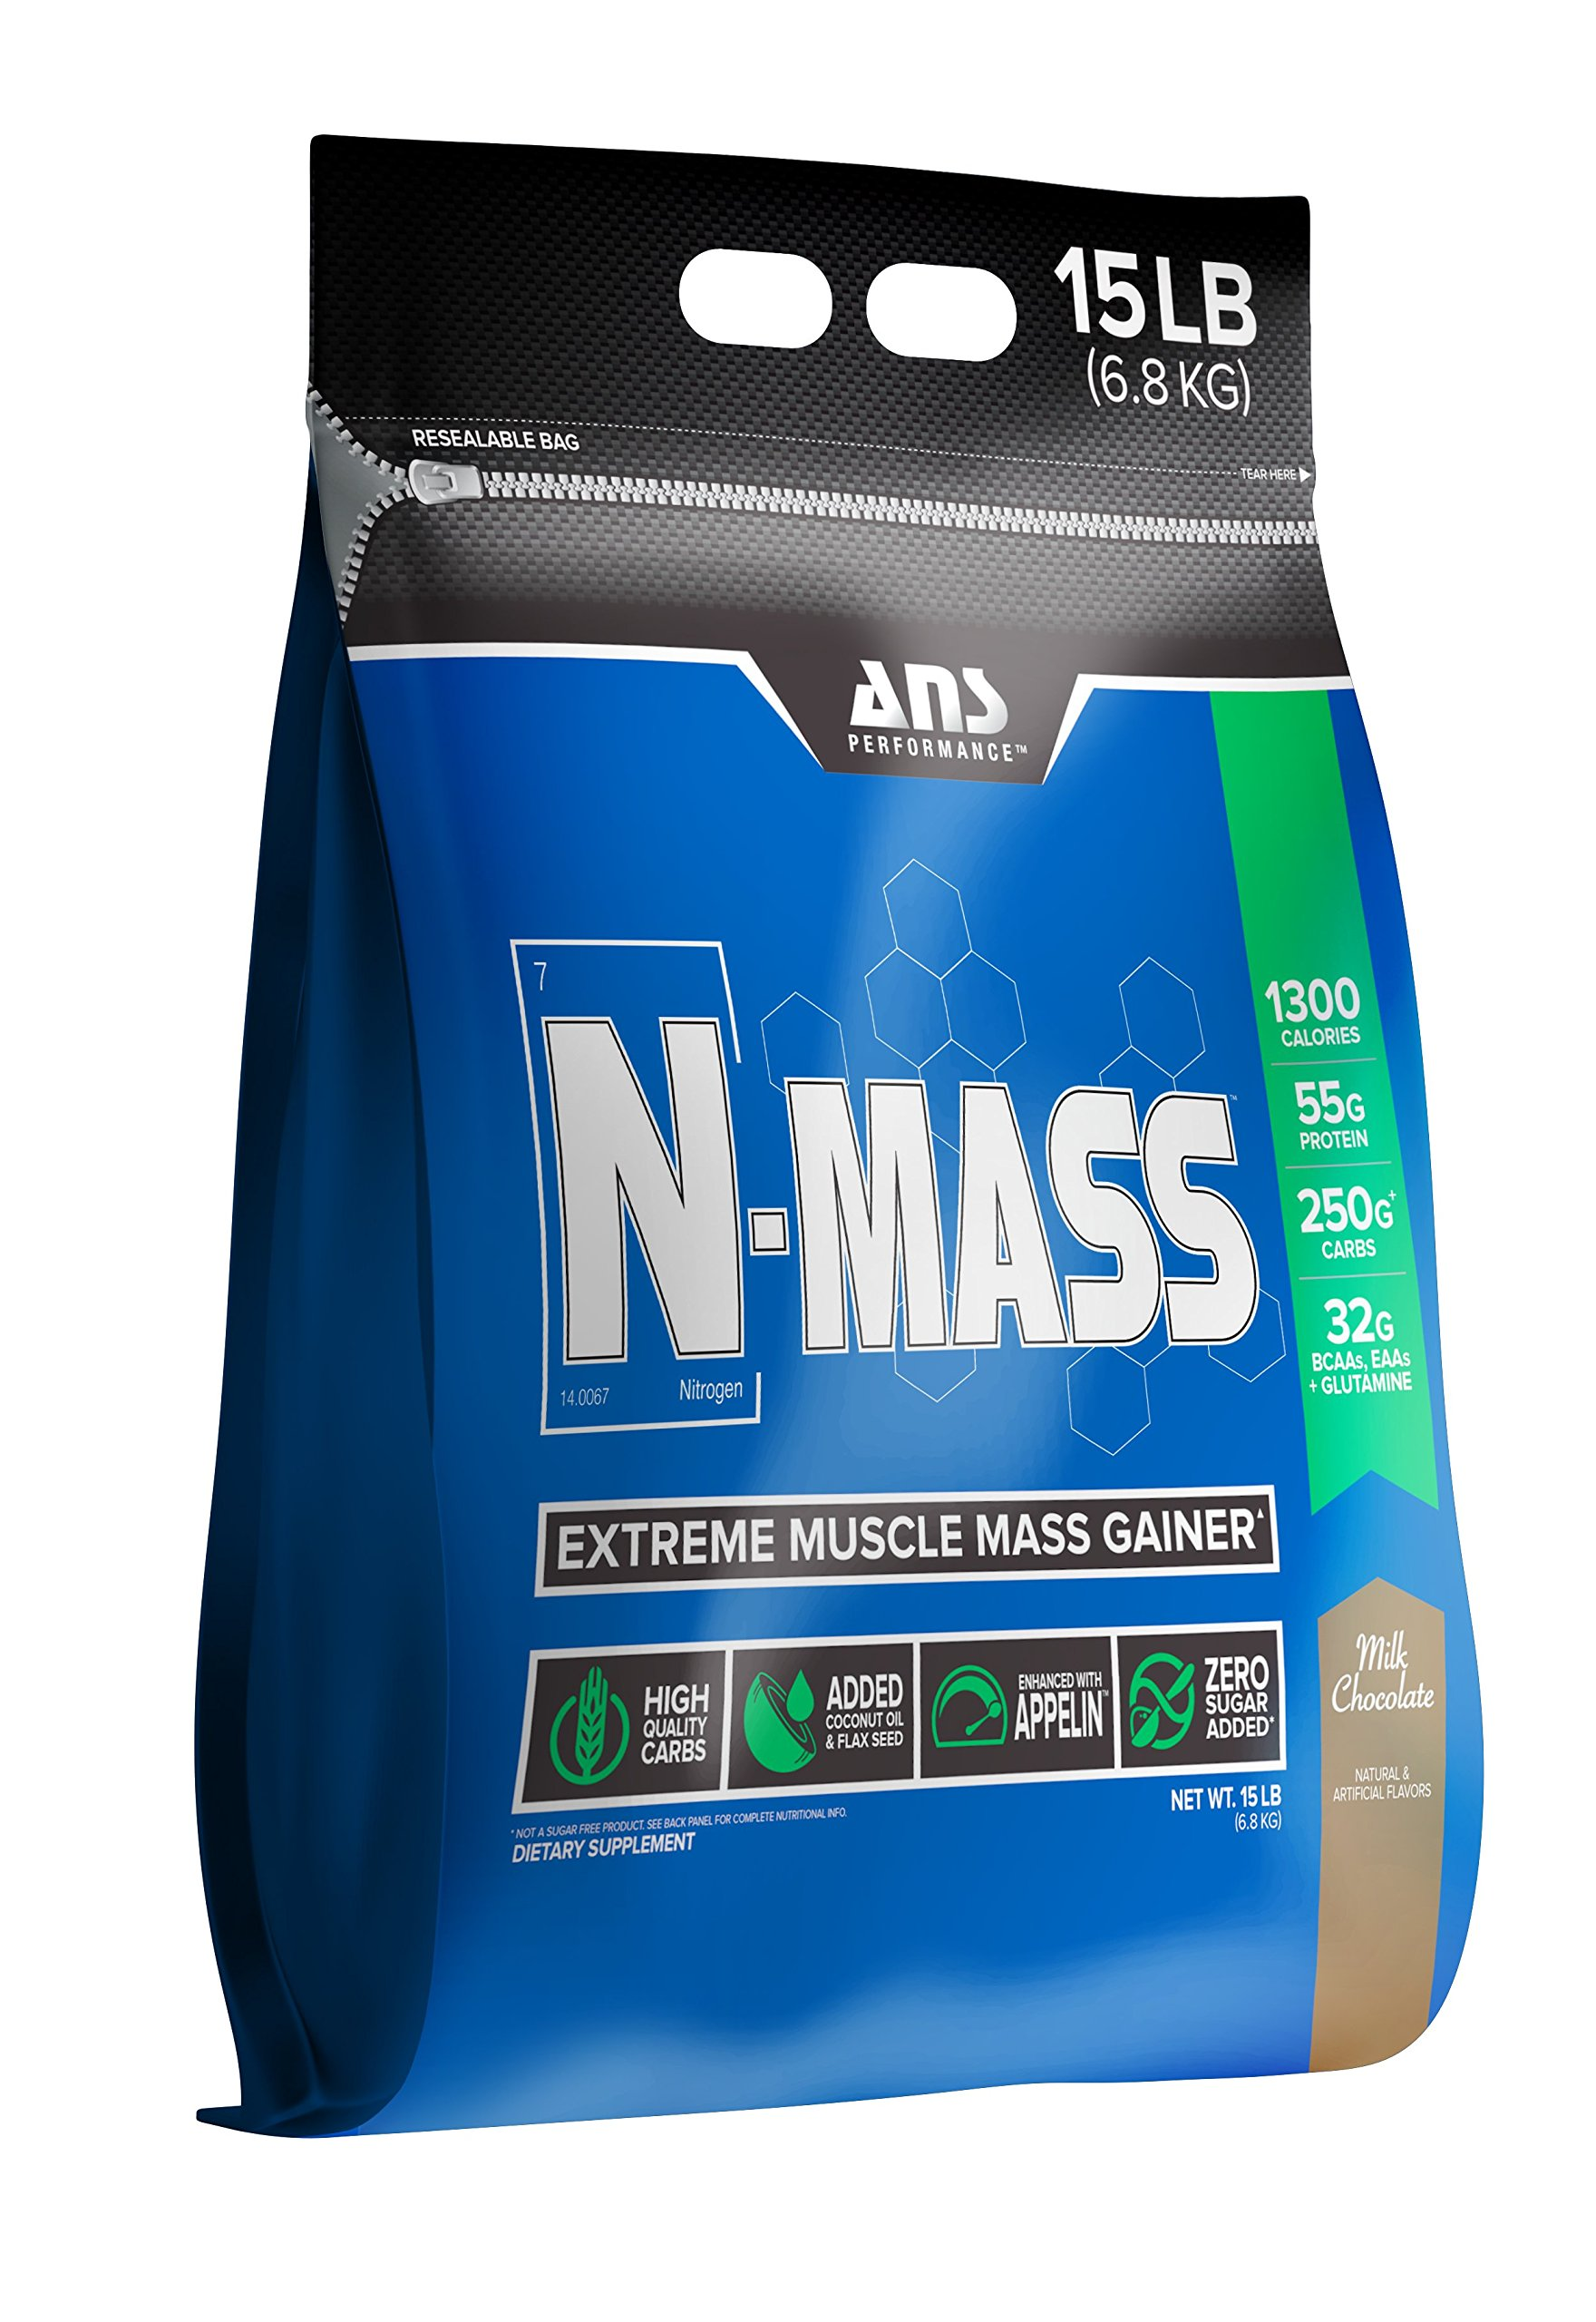 ANS Performance N-Mass Muscle Mass Gainer, Premium Mass Builder For CLEAN (quality) Gains, Milk Chocolate, 15 Pounds